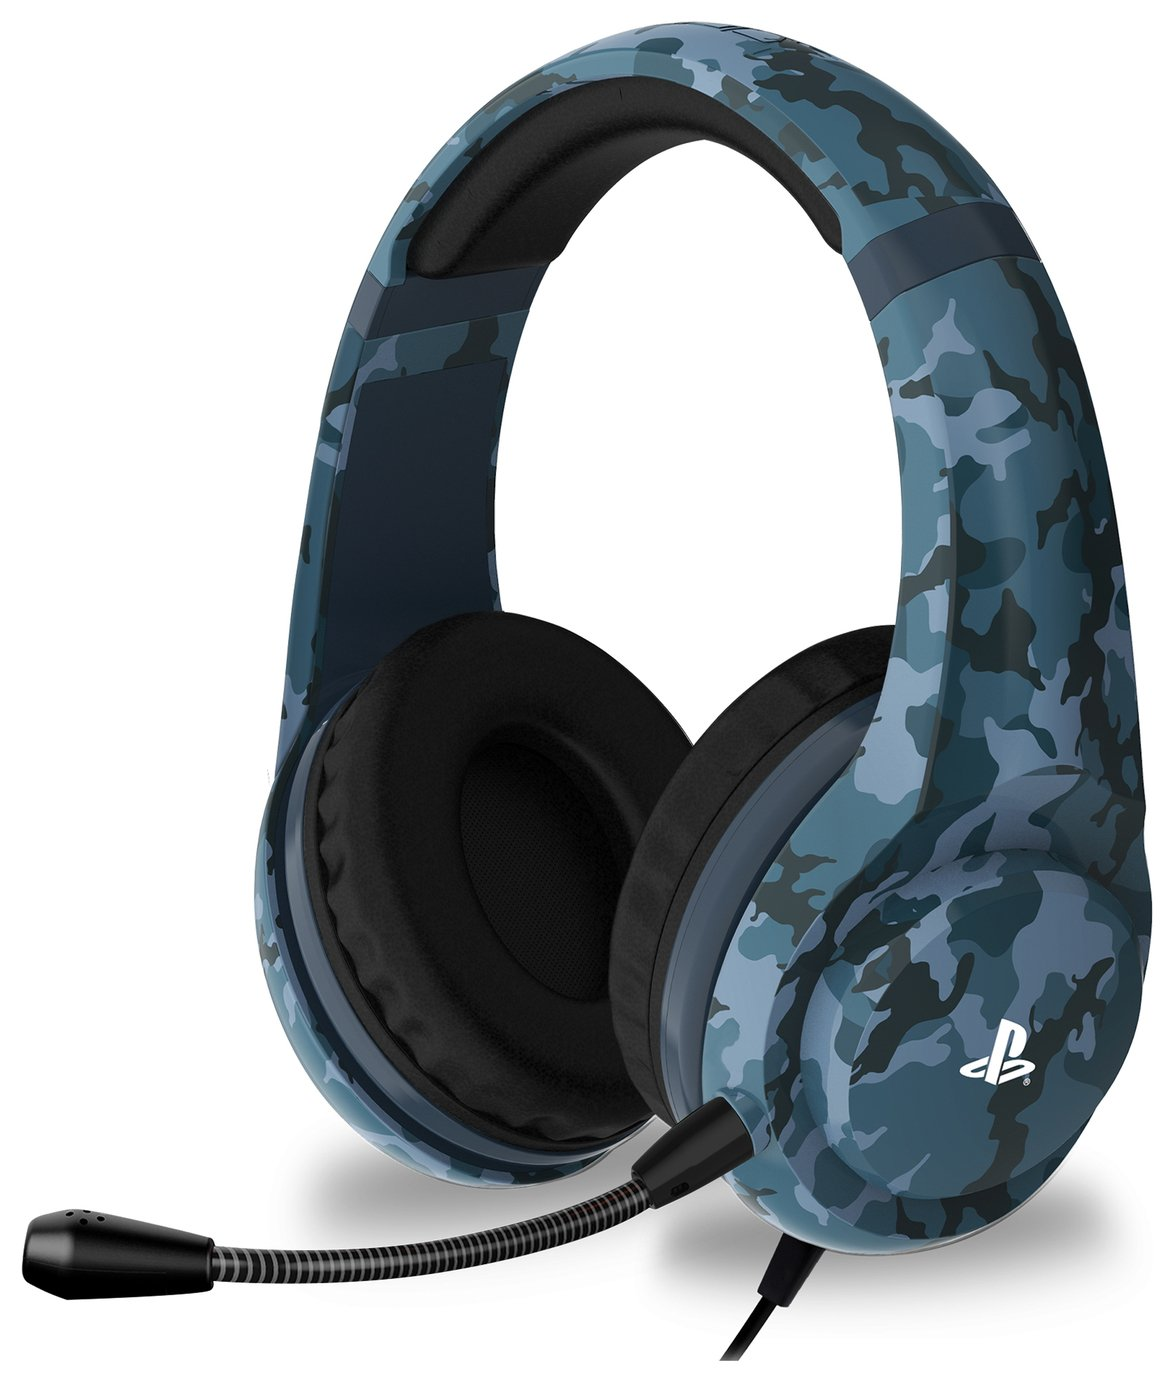 Officially Licensed PRO4-70 PS4 Headset - Midnight Camo